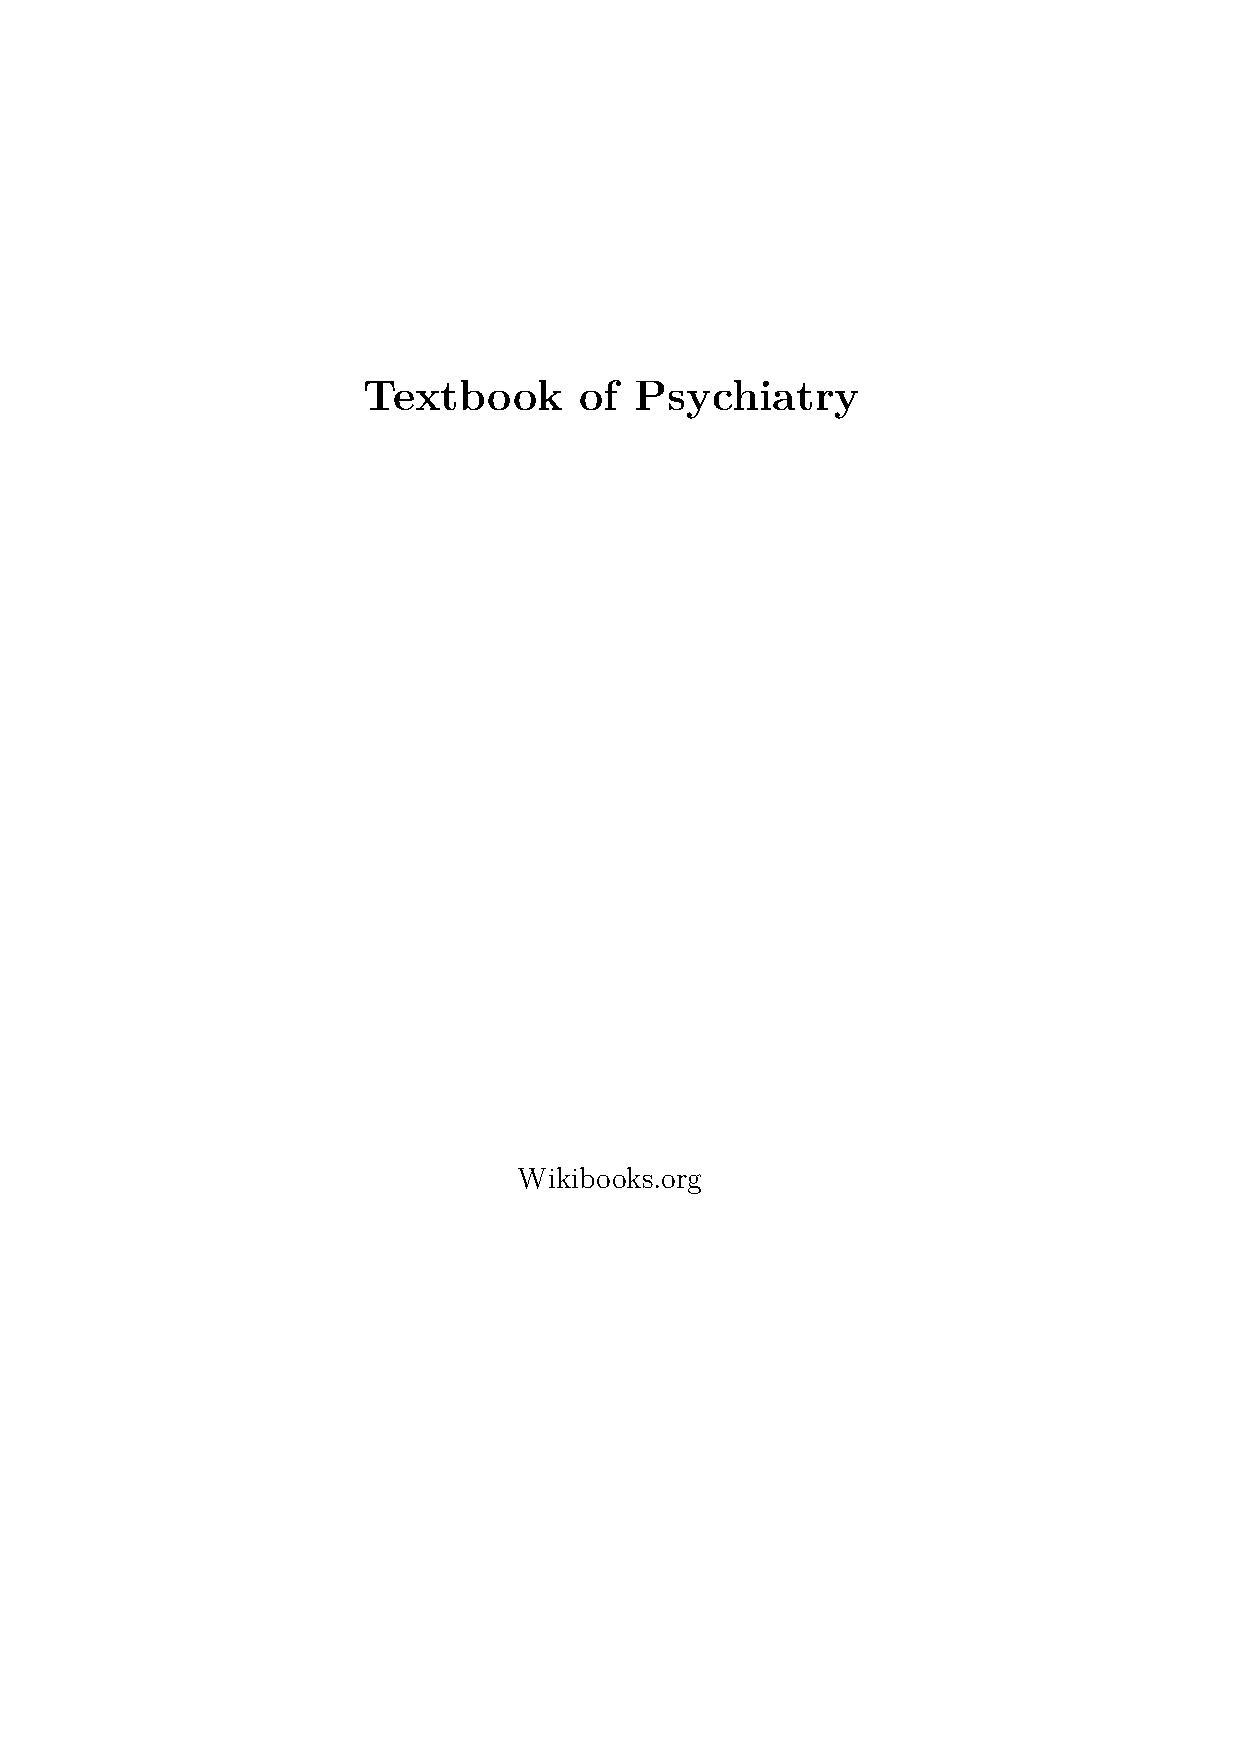 introductory textbook of psychiatry pdf